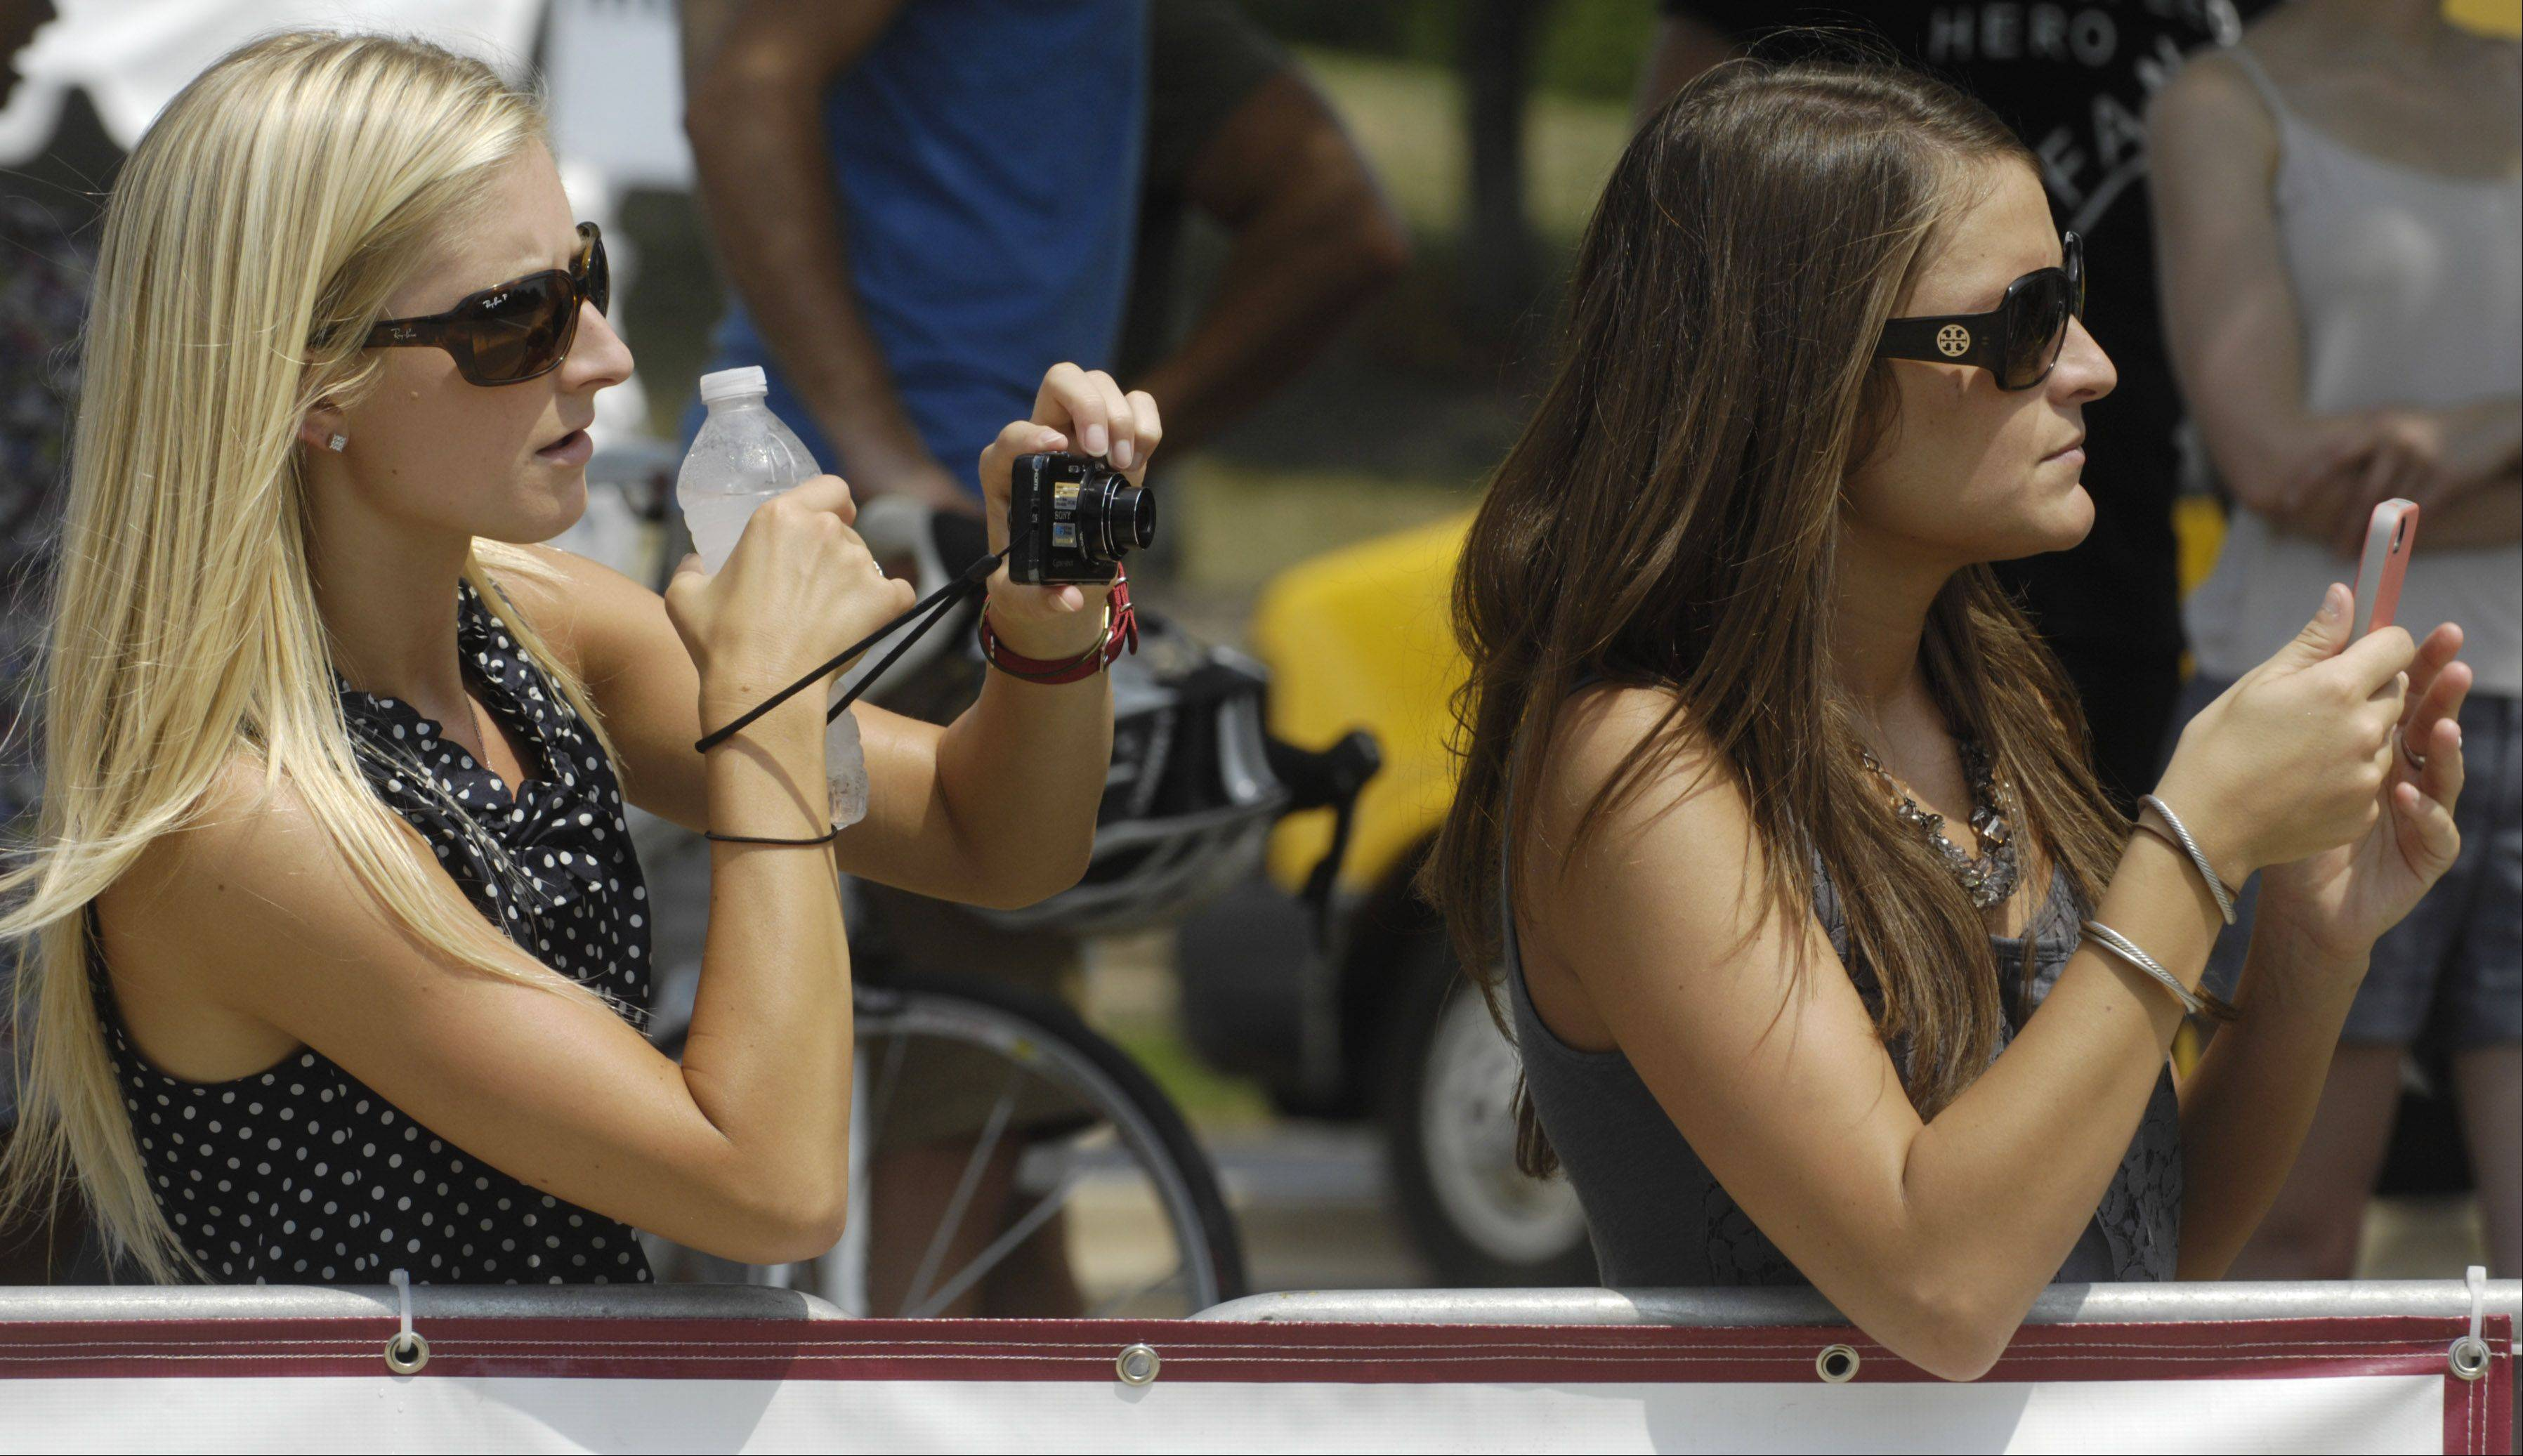 Christine Allegretti of Park Ridge and Meghan Hull of Wheaton take photos of their boyfriends, who were competing in the Tour of Elk Grove Saturday.